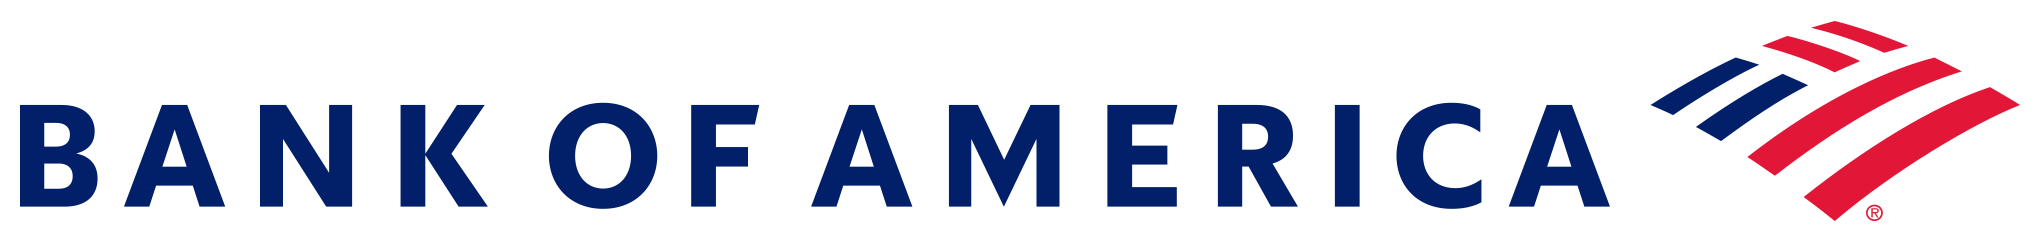 New Logo for Bank of America by Lippincott